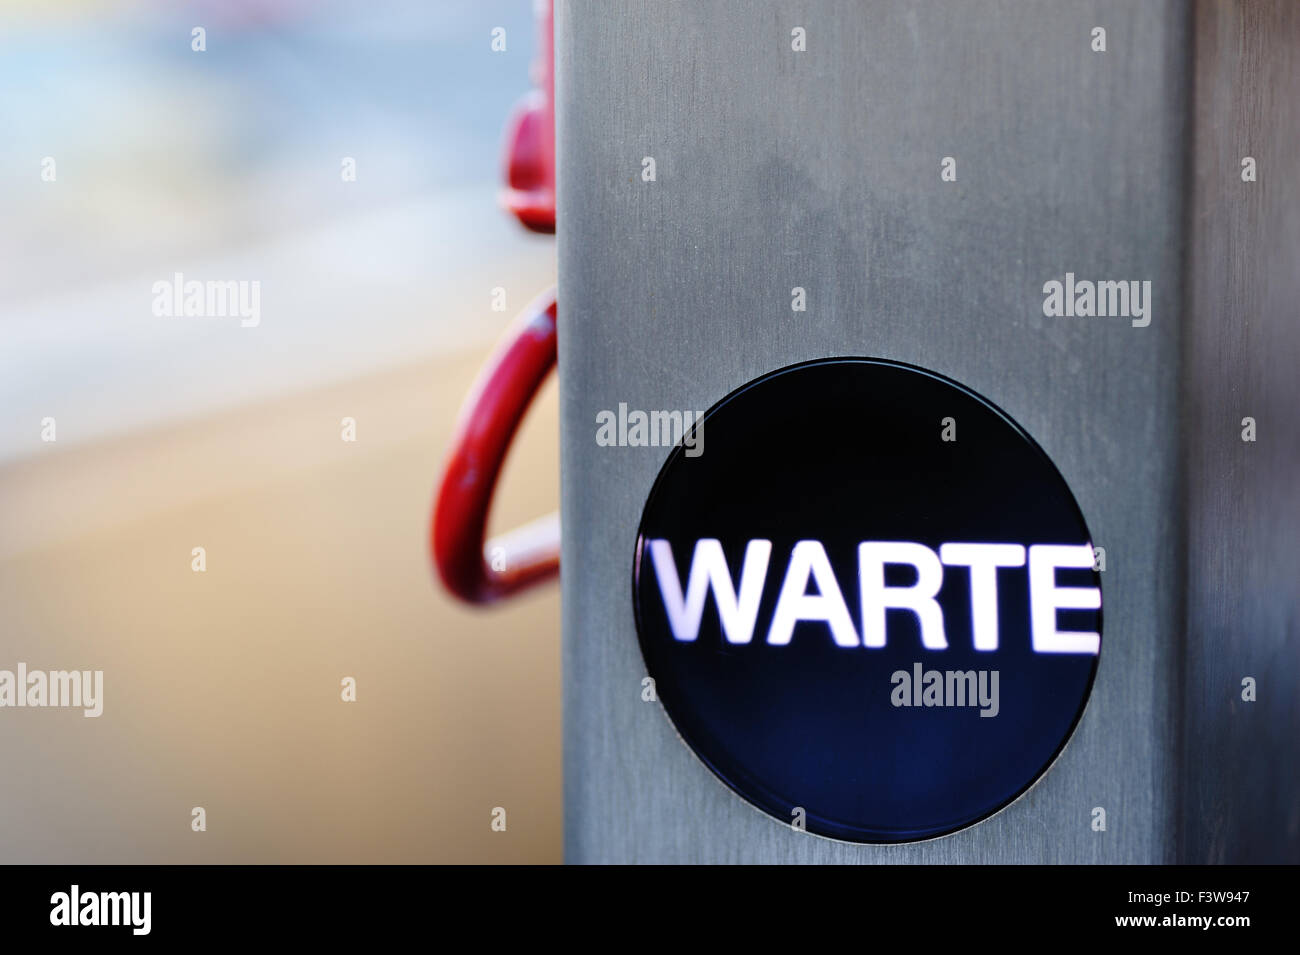 wait - Stock Image